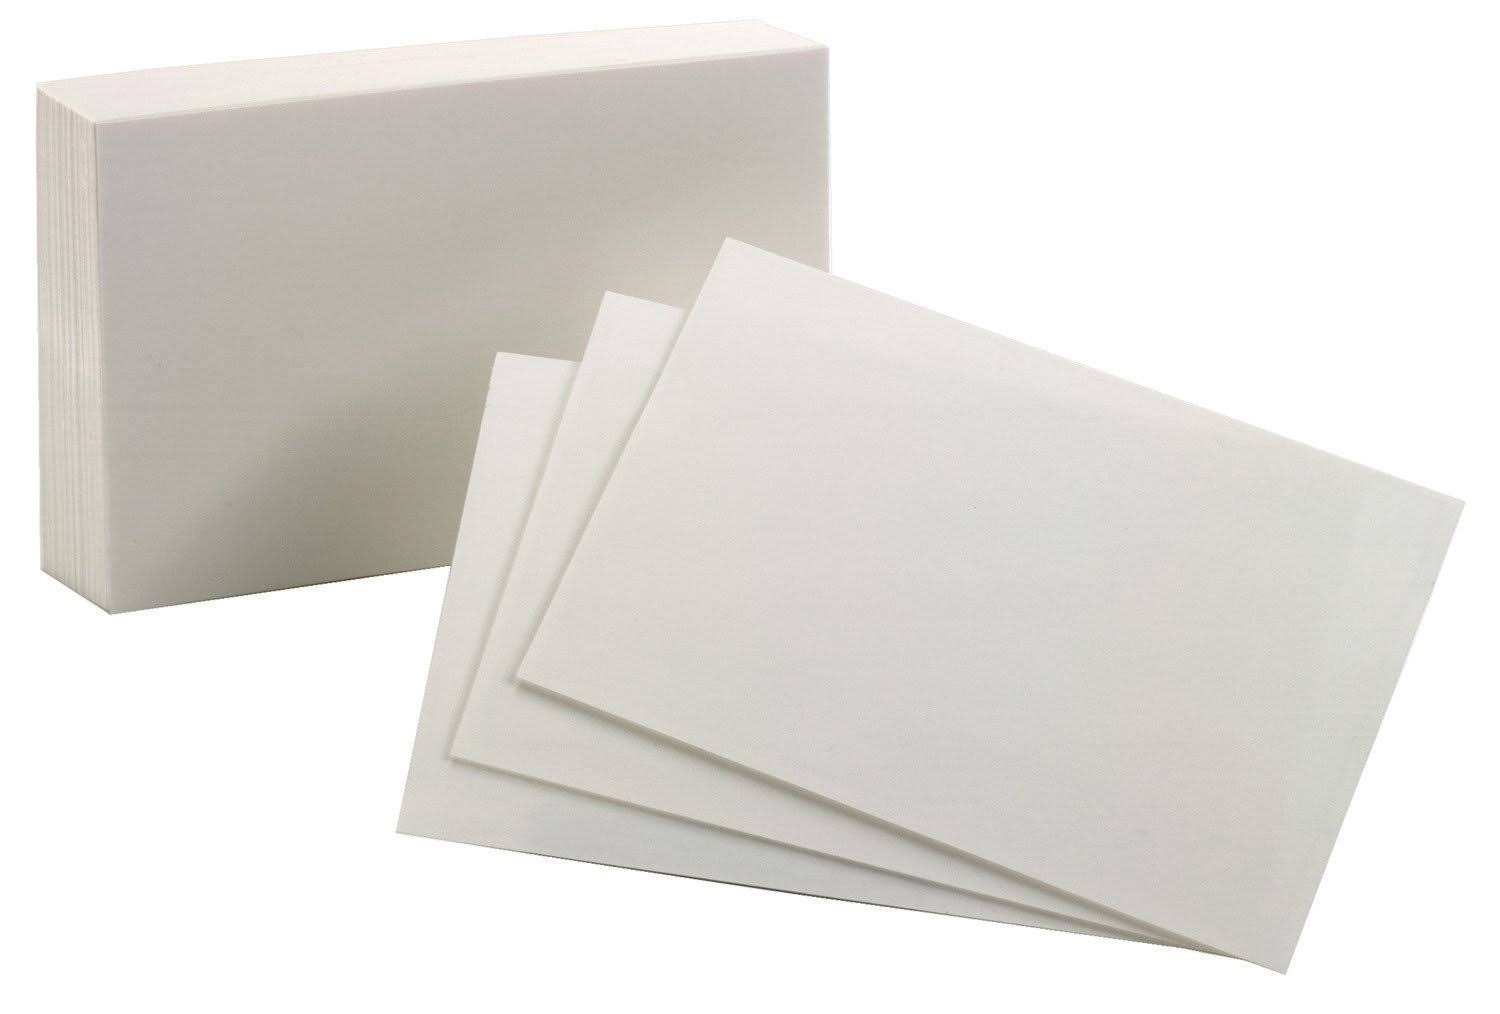 Oxford 40156-Sp Blank Index Cards - White, 10cm x 15cm, 100 Count